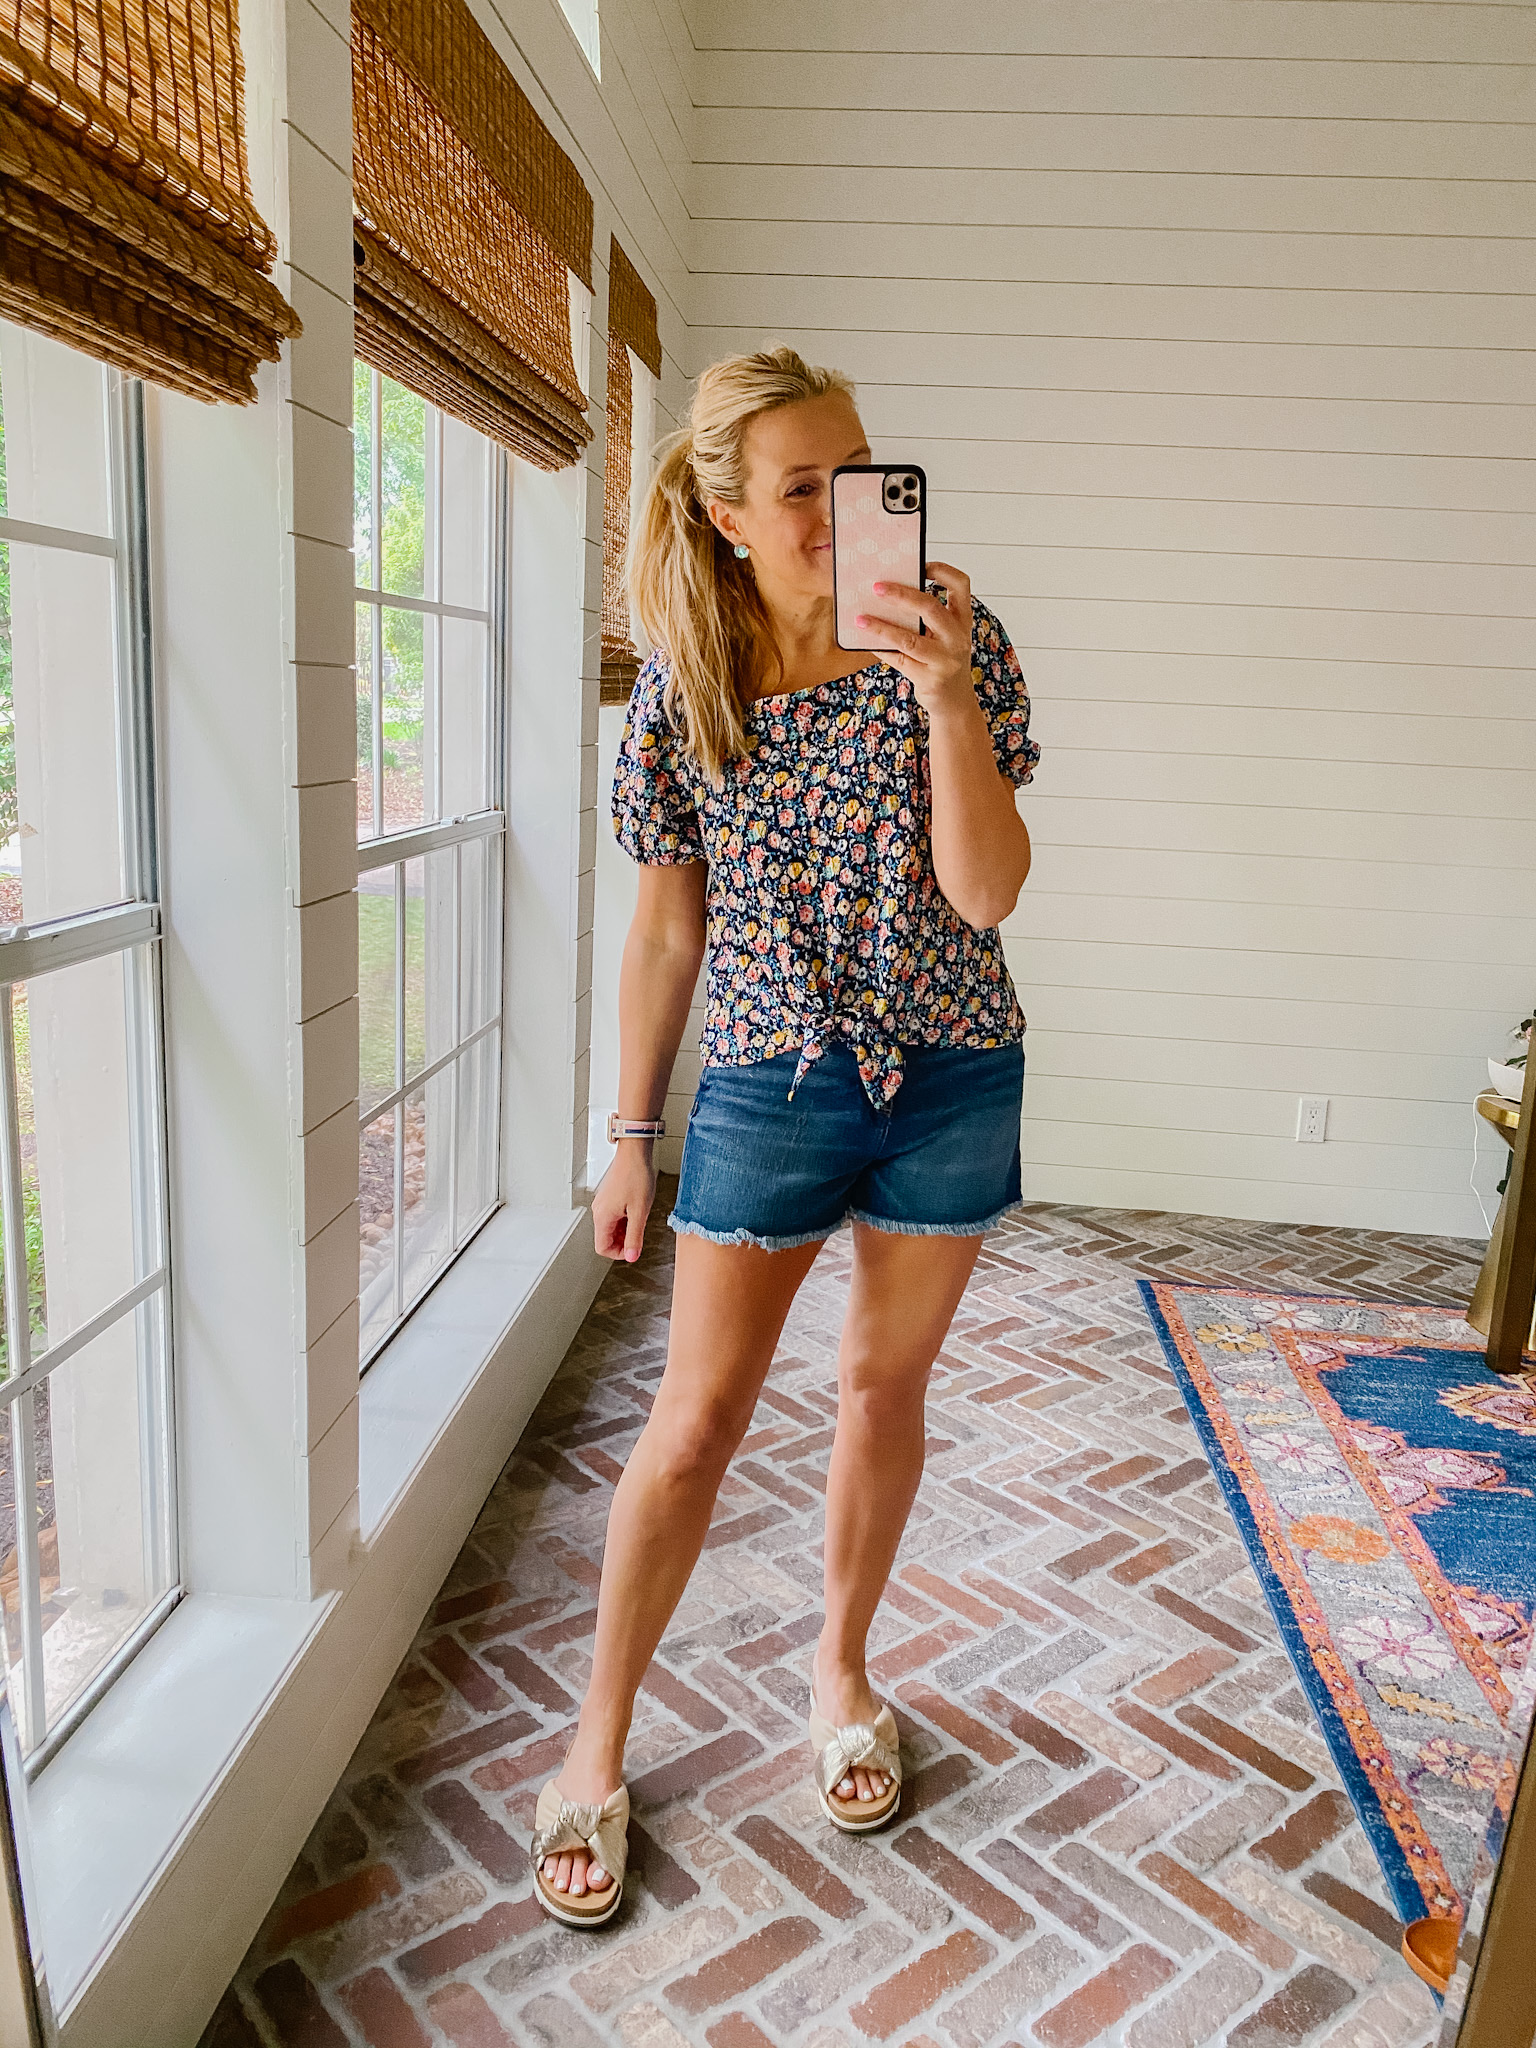 Loft Clothing by popular Houston fashion blog, The House of Fancy: image of a woman wearing a Loft floral print tie front top with distressed hem denim shorts and metallic slide sandals.